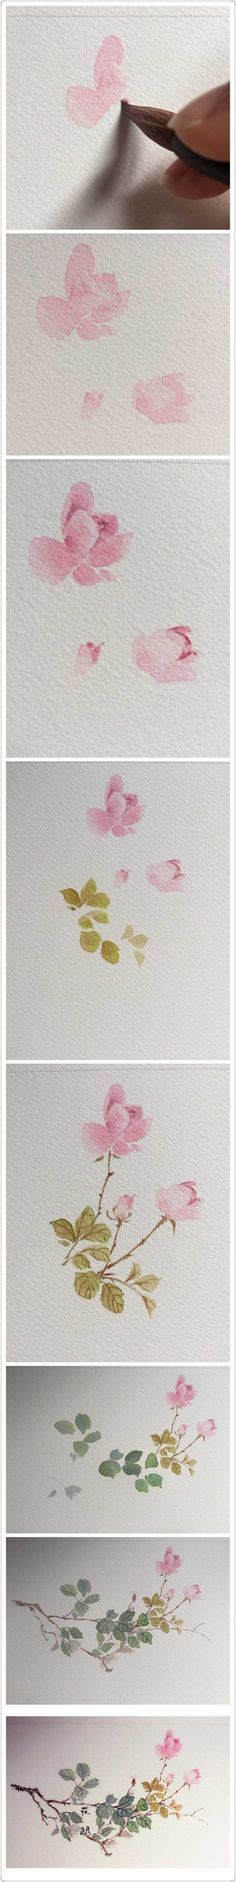 Watercolor art: Roses